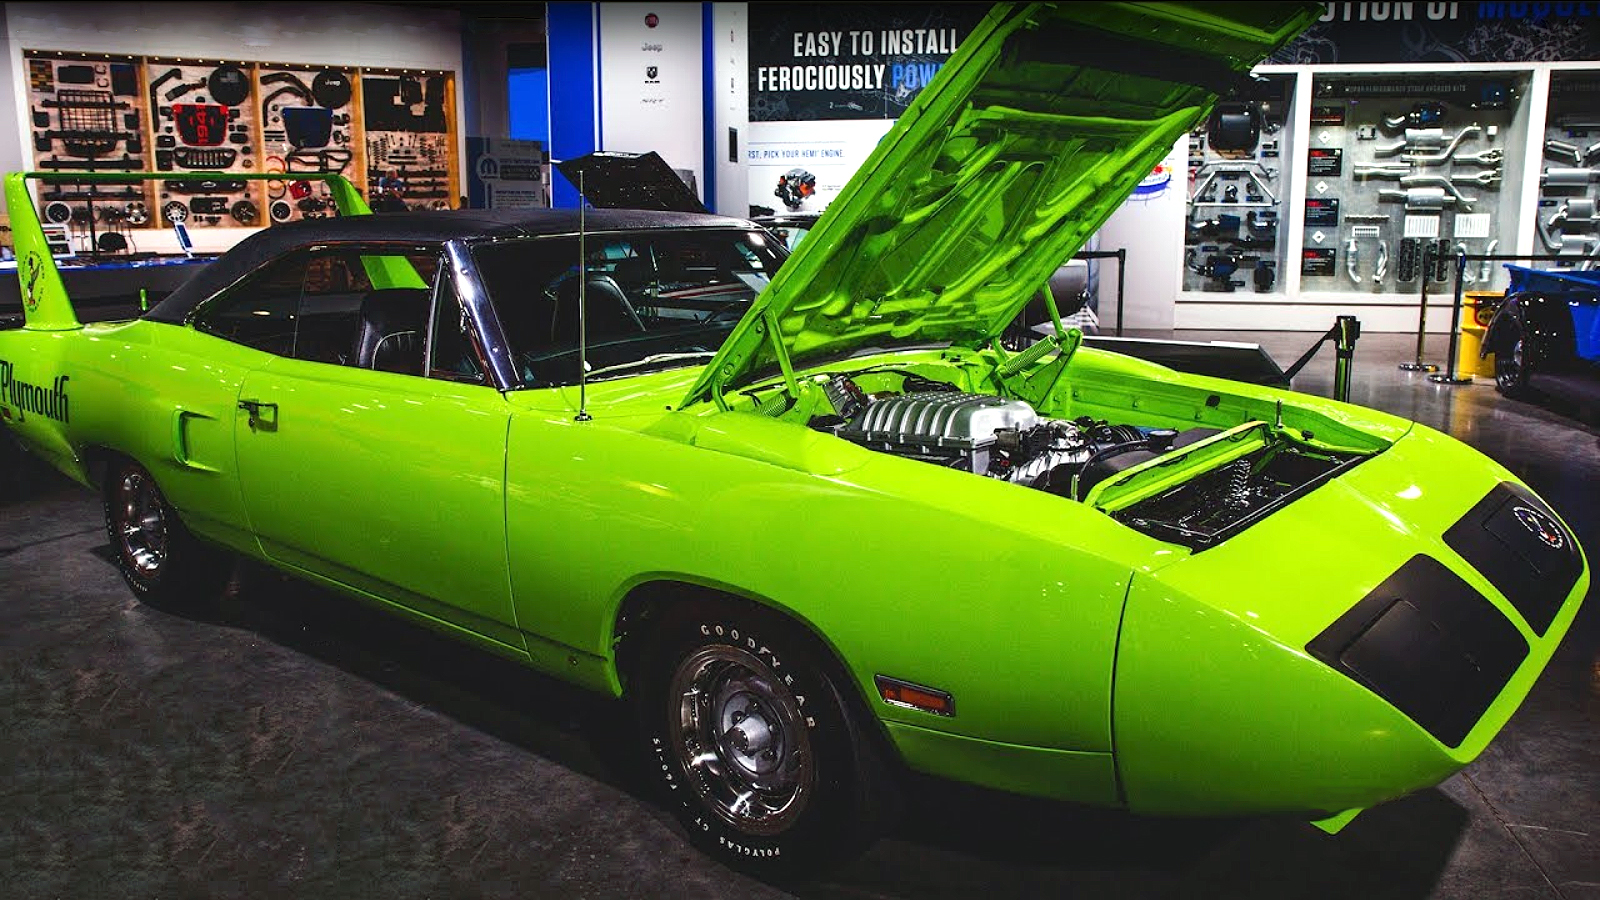 Breathtaking Hellcat Powered 1970 Plymouth Superbird by Graveyard Carz